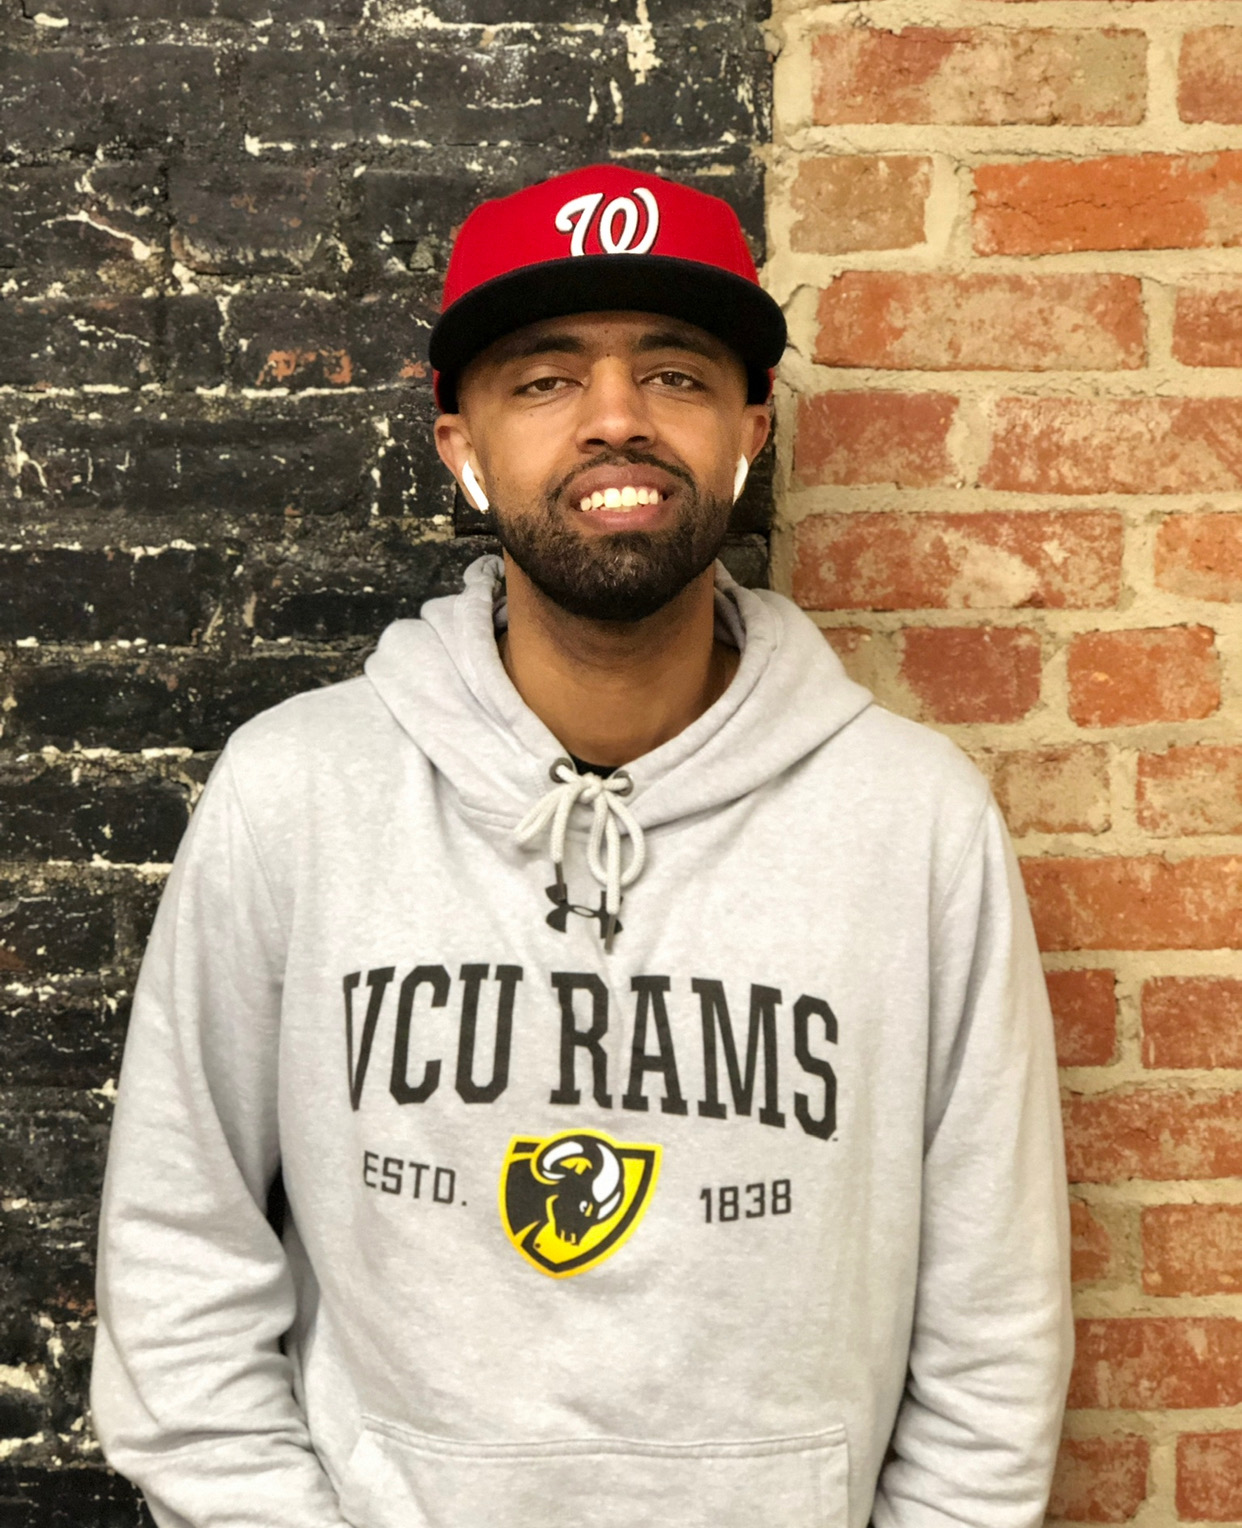 Abel Meri in Nats cap and VCU hoodie.